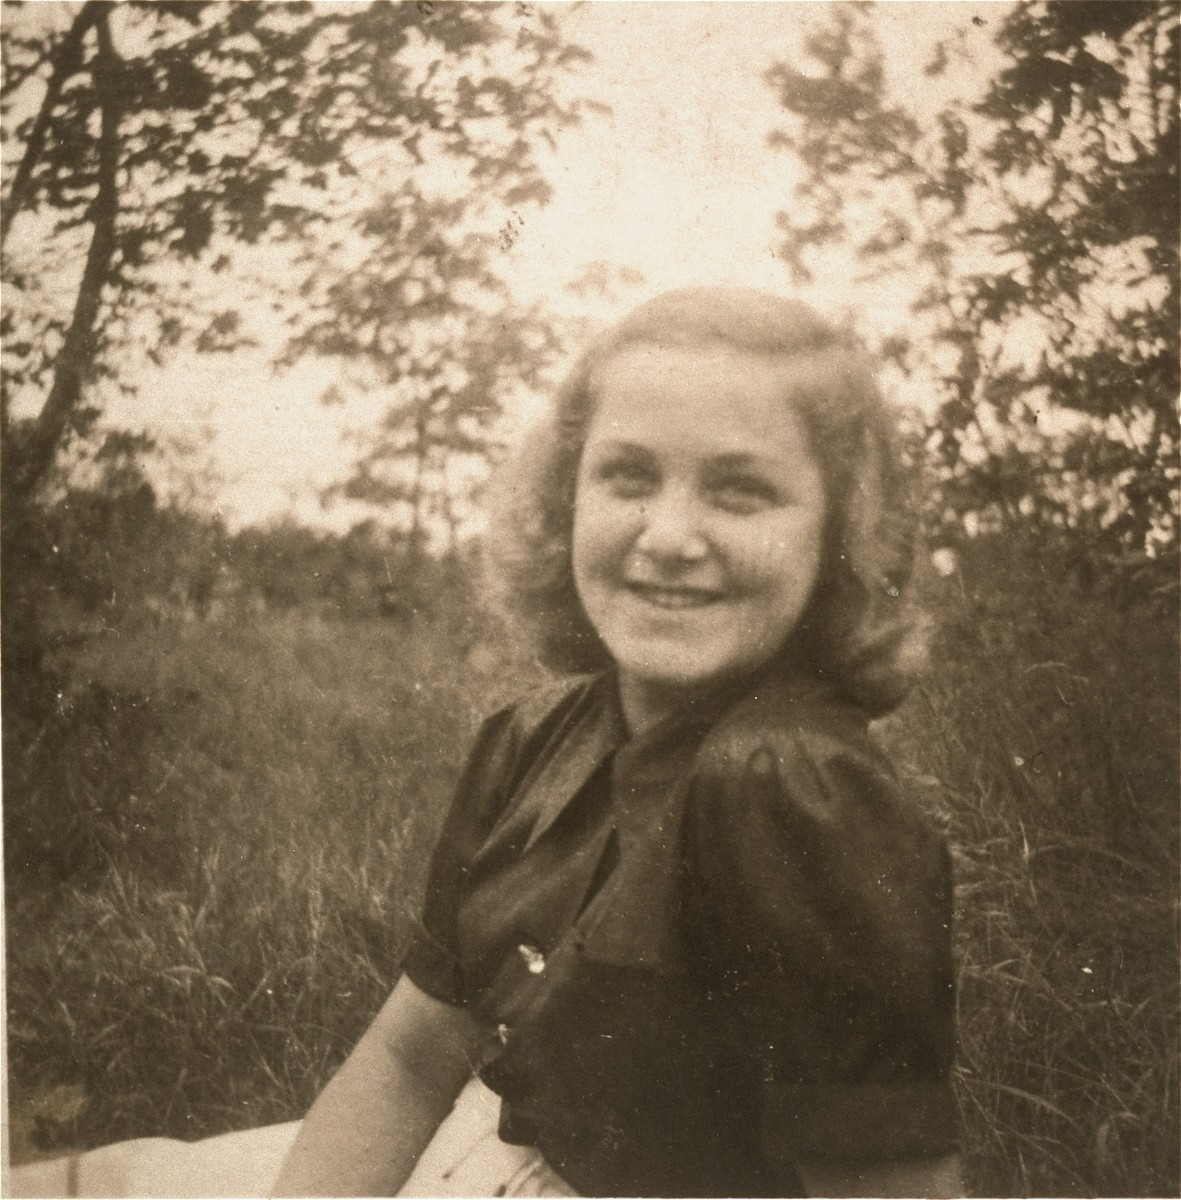 Portrait of a German girl whom Solly Perel dated while living in hiding as a student at the Hitler Youth school in Braunschweig.  Pictured is Leni Latsch, a member of the Bund Deutscher Maedels (League of German Girls).